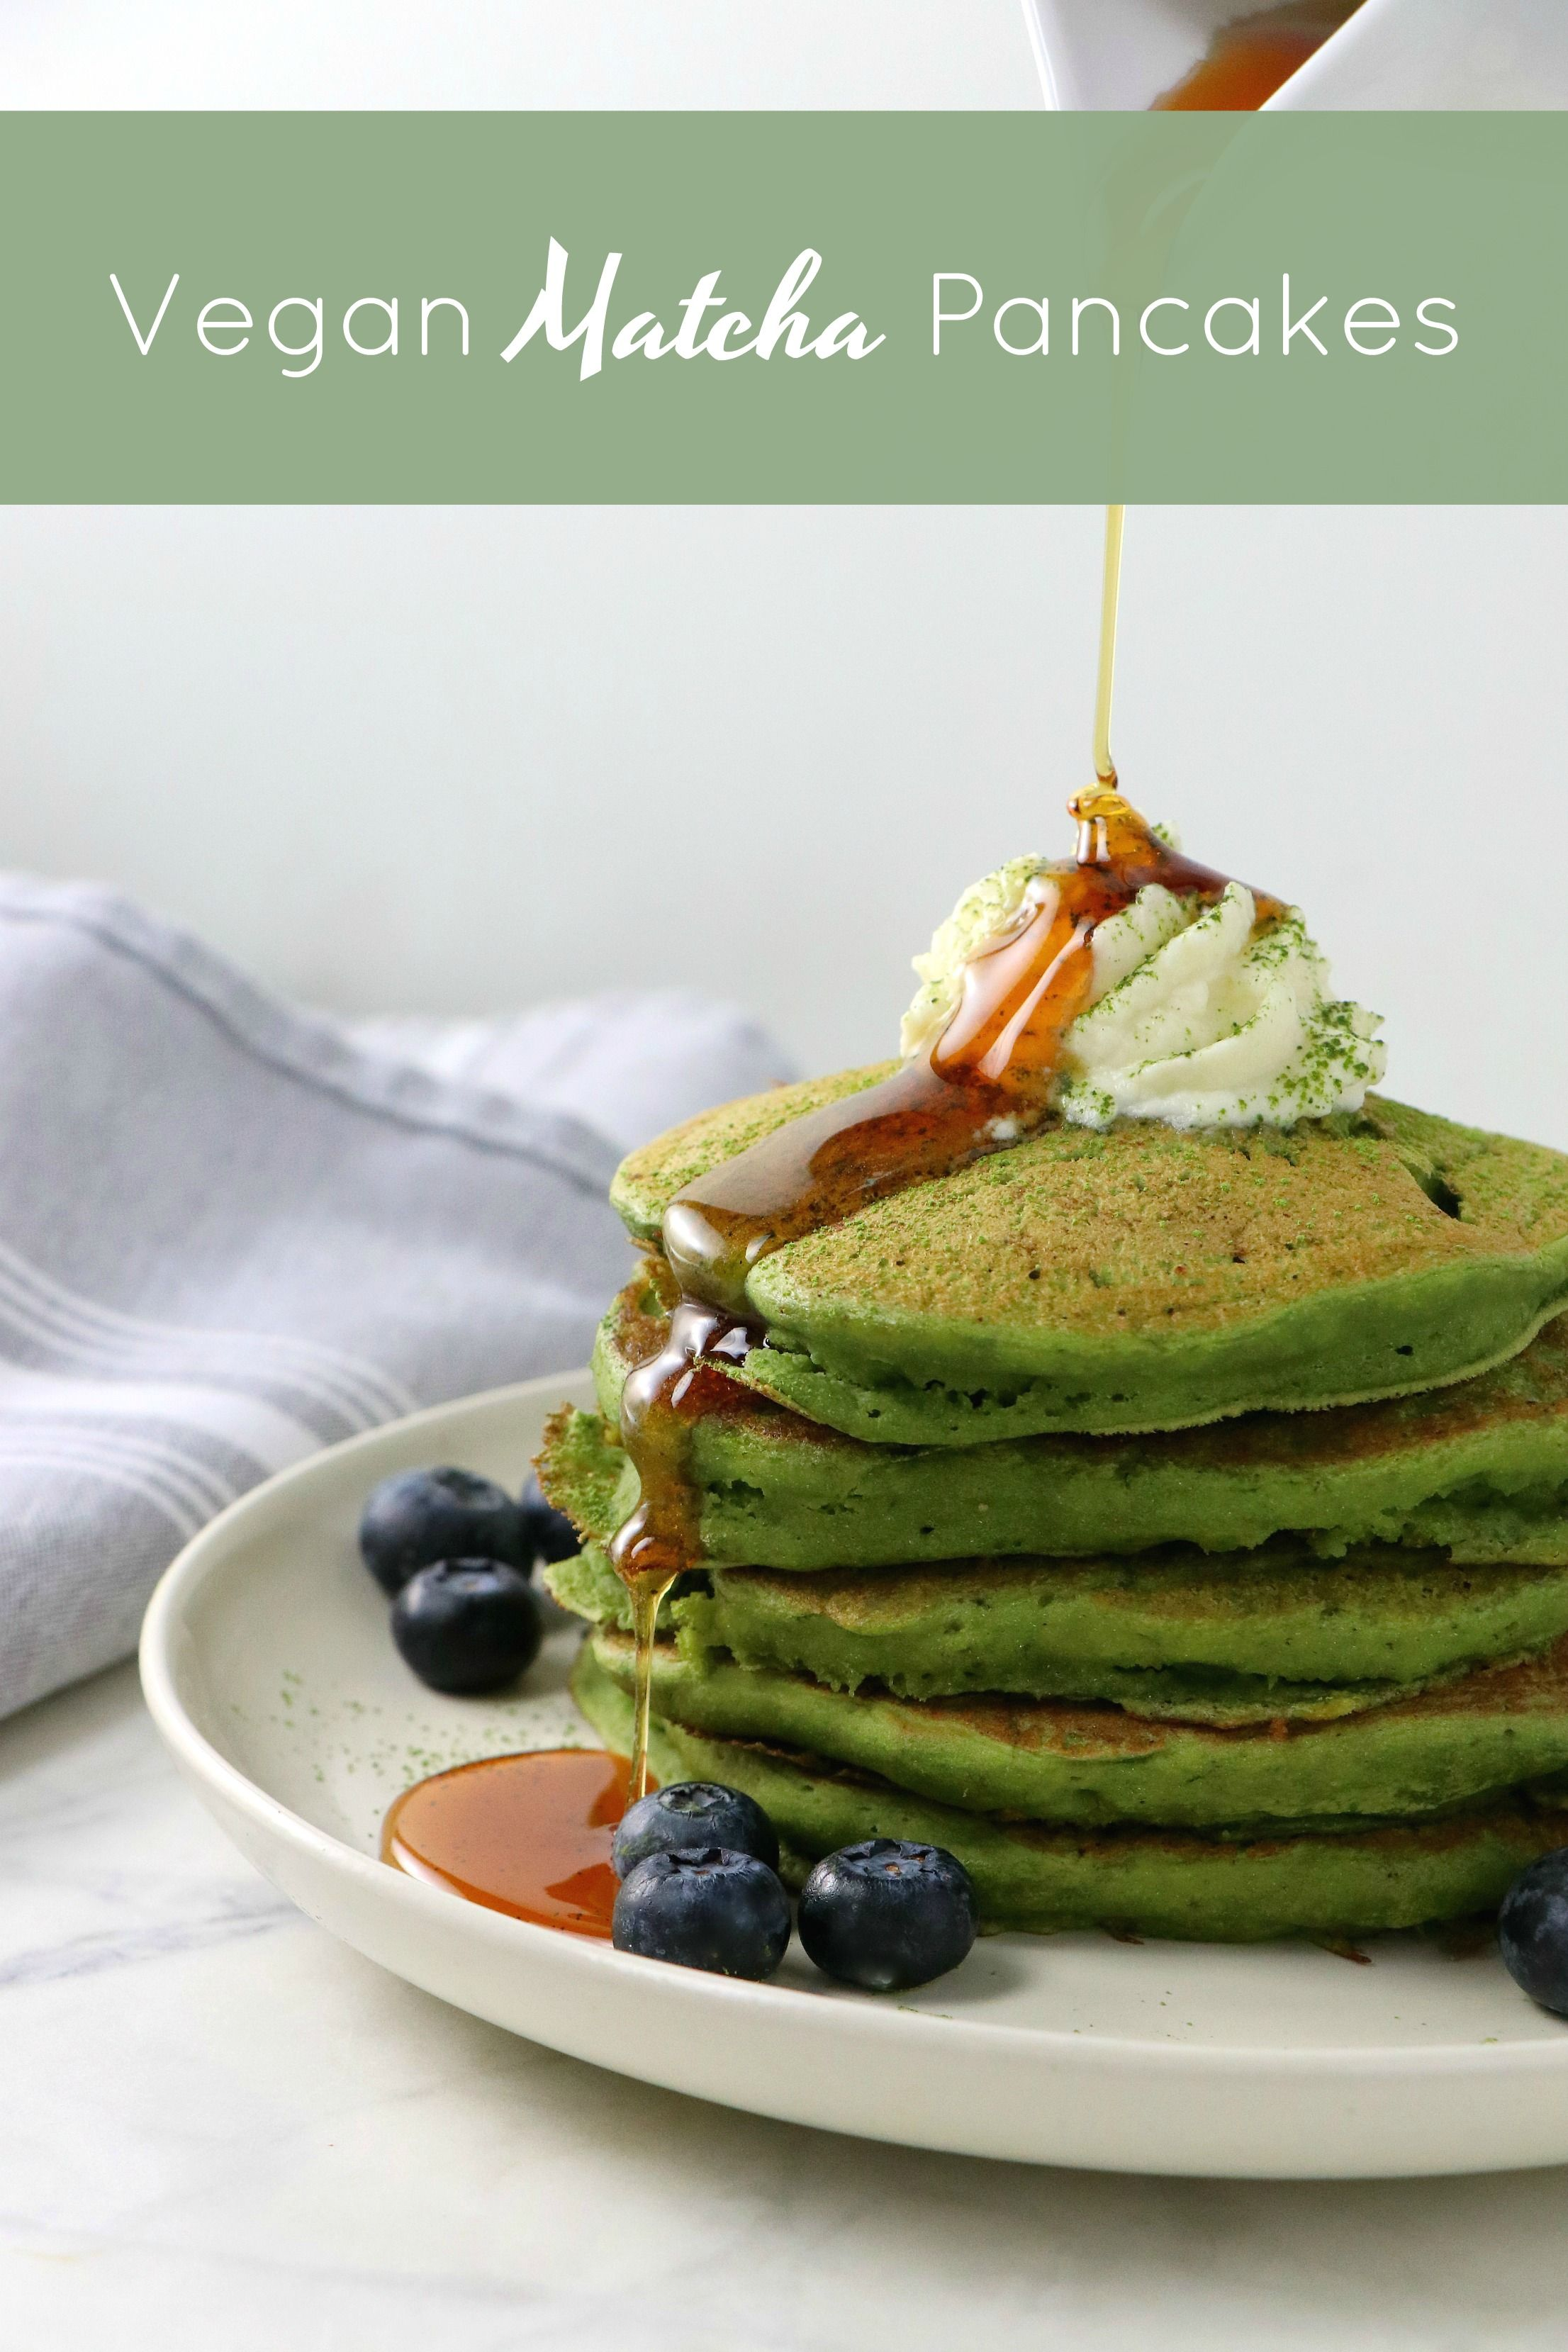 Vegan Matcha Pancakes Eat Drink Shrink Recipe In 2020 Matcha Green Tea Recipes Matcha Pancakes Matcha Recipe